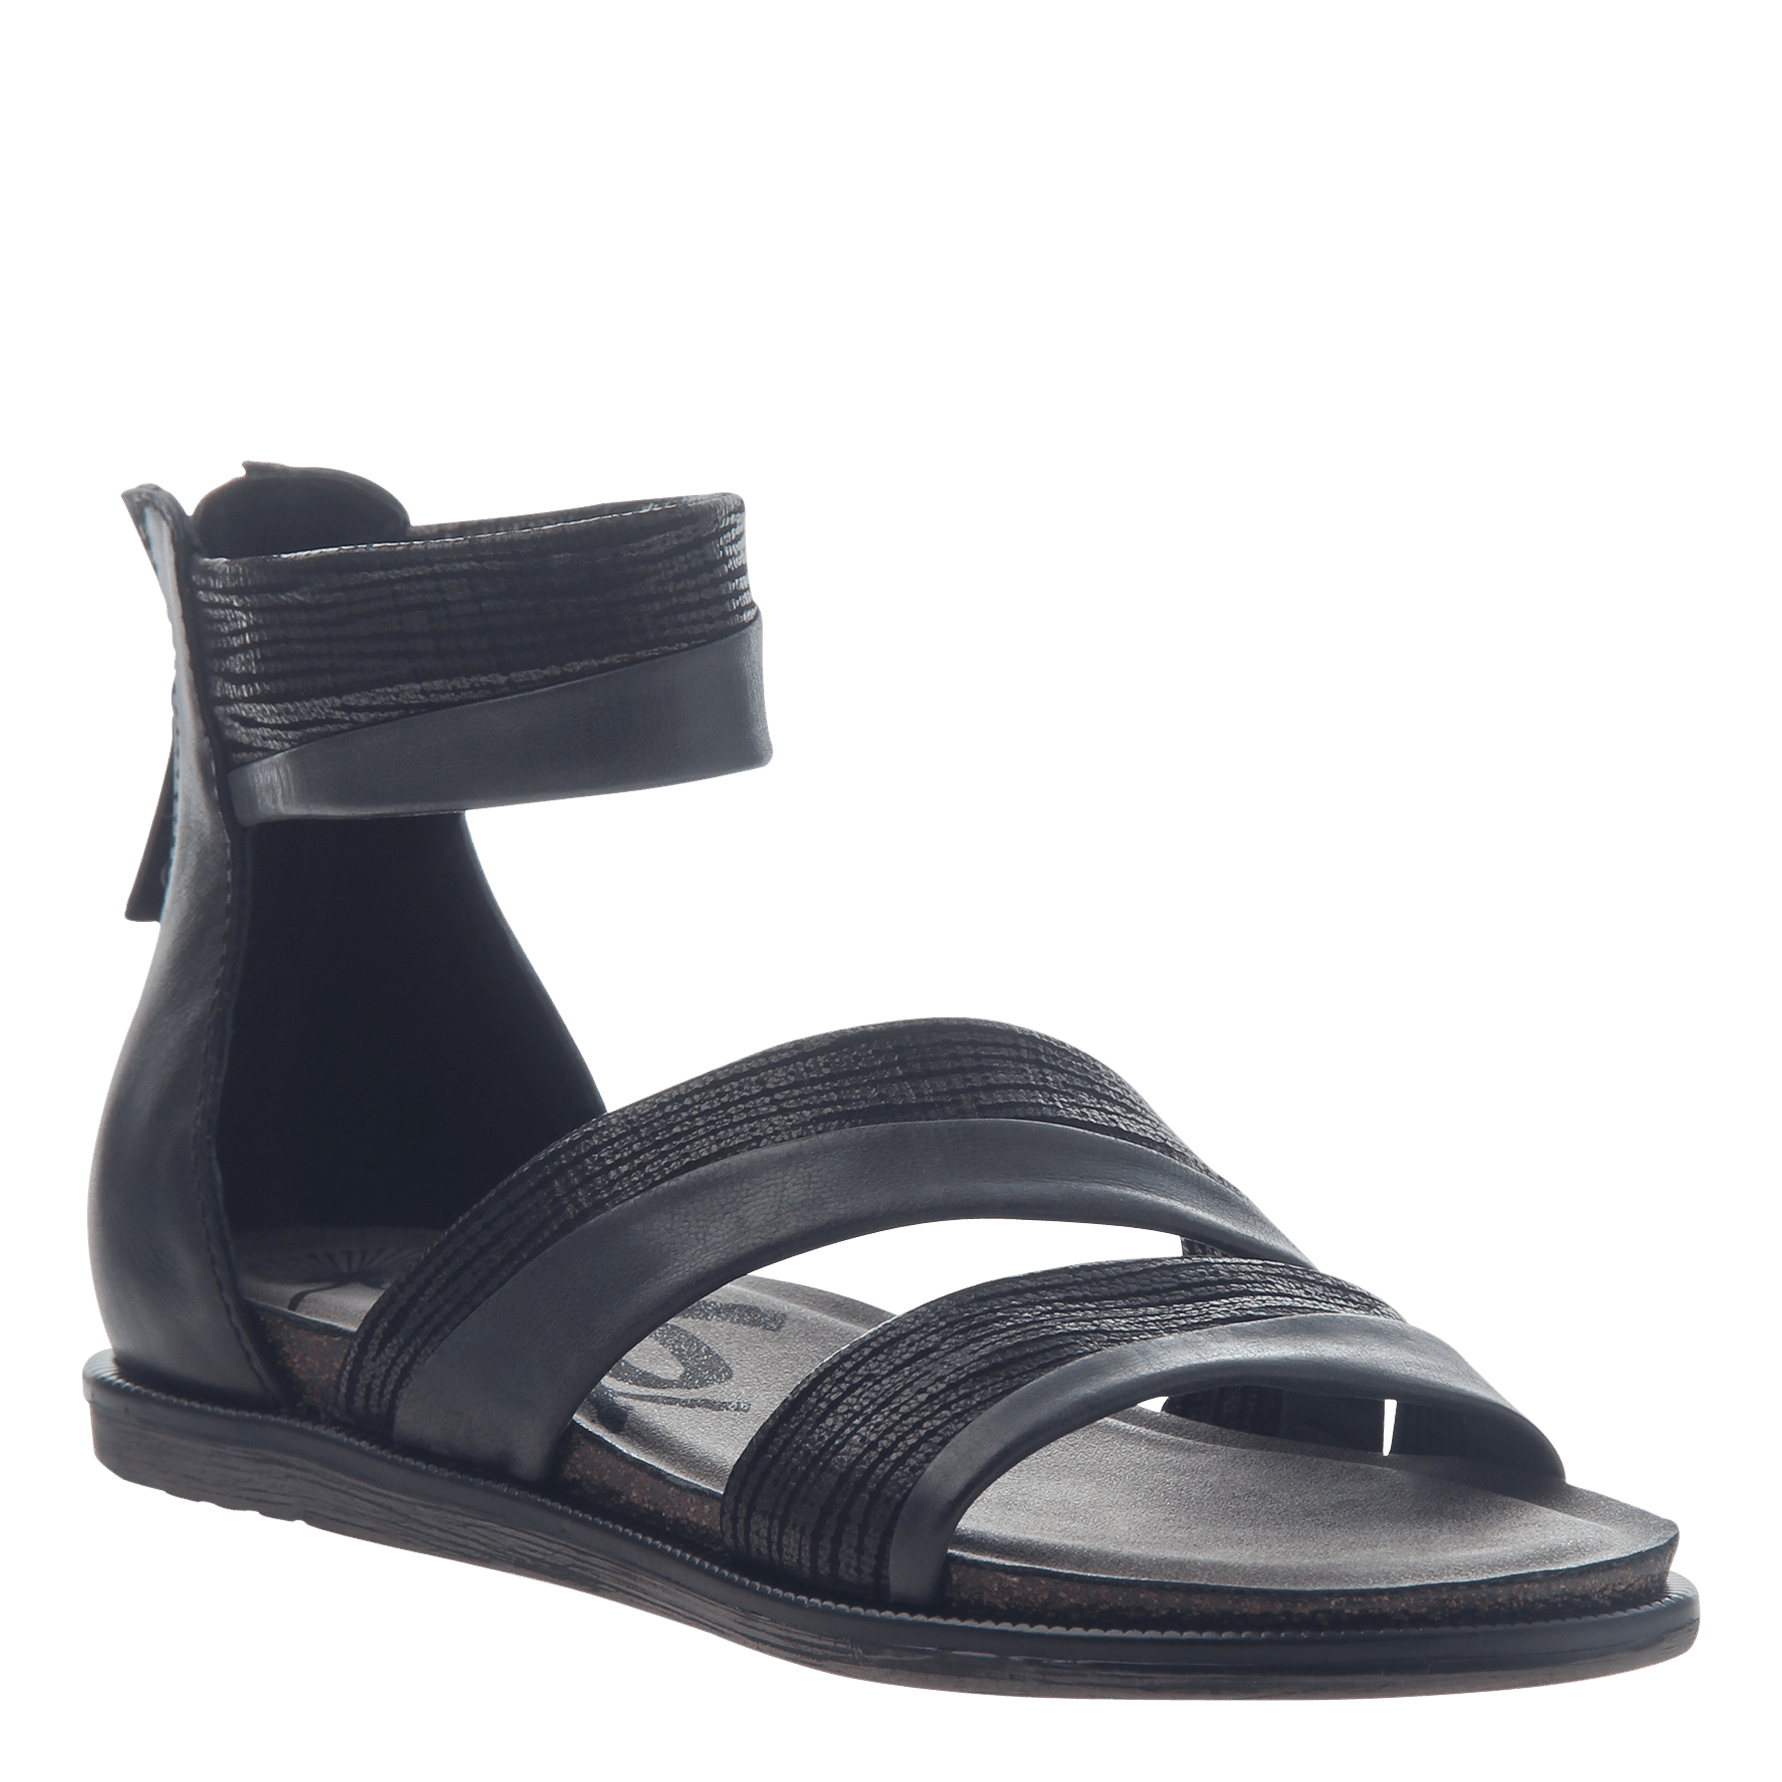 Womens flat sandals Souvenir in Black